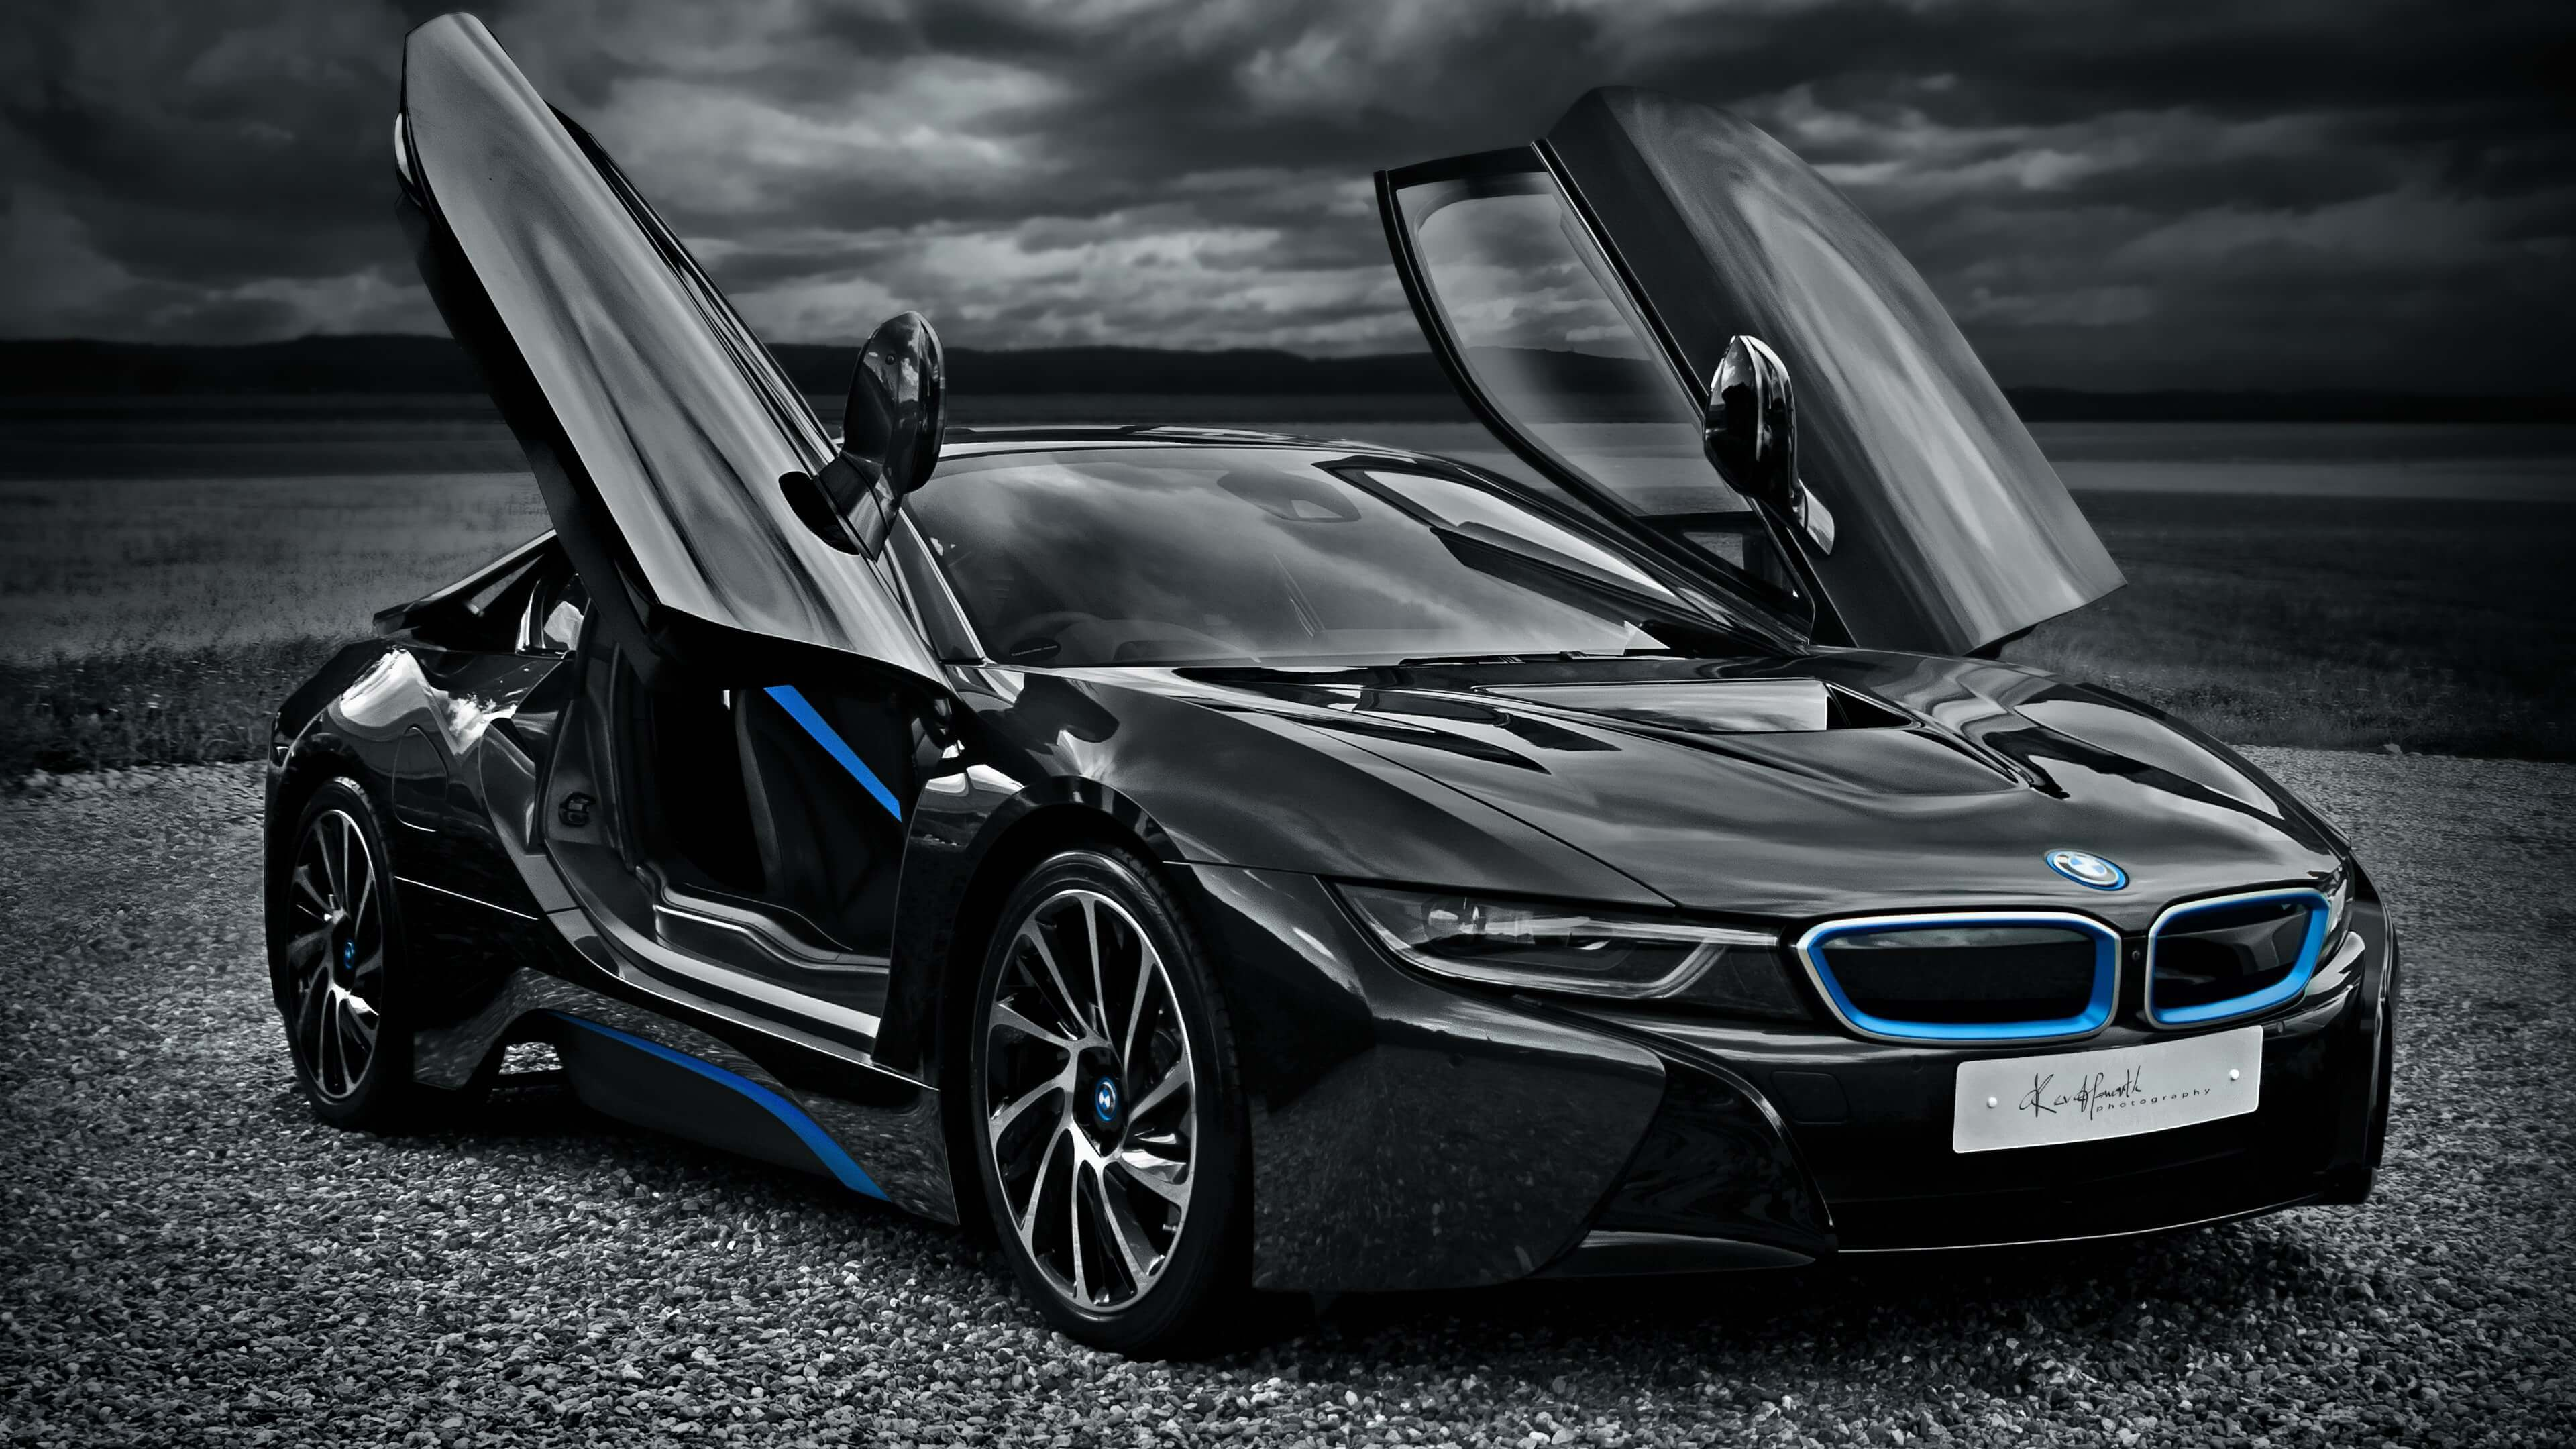 Bmw Car 4k Wallpaper Download